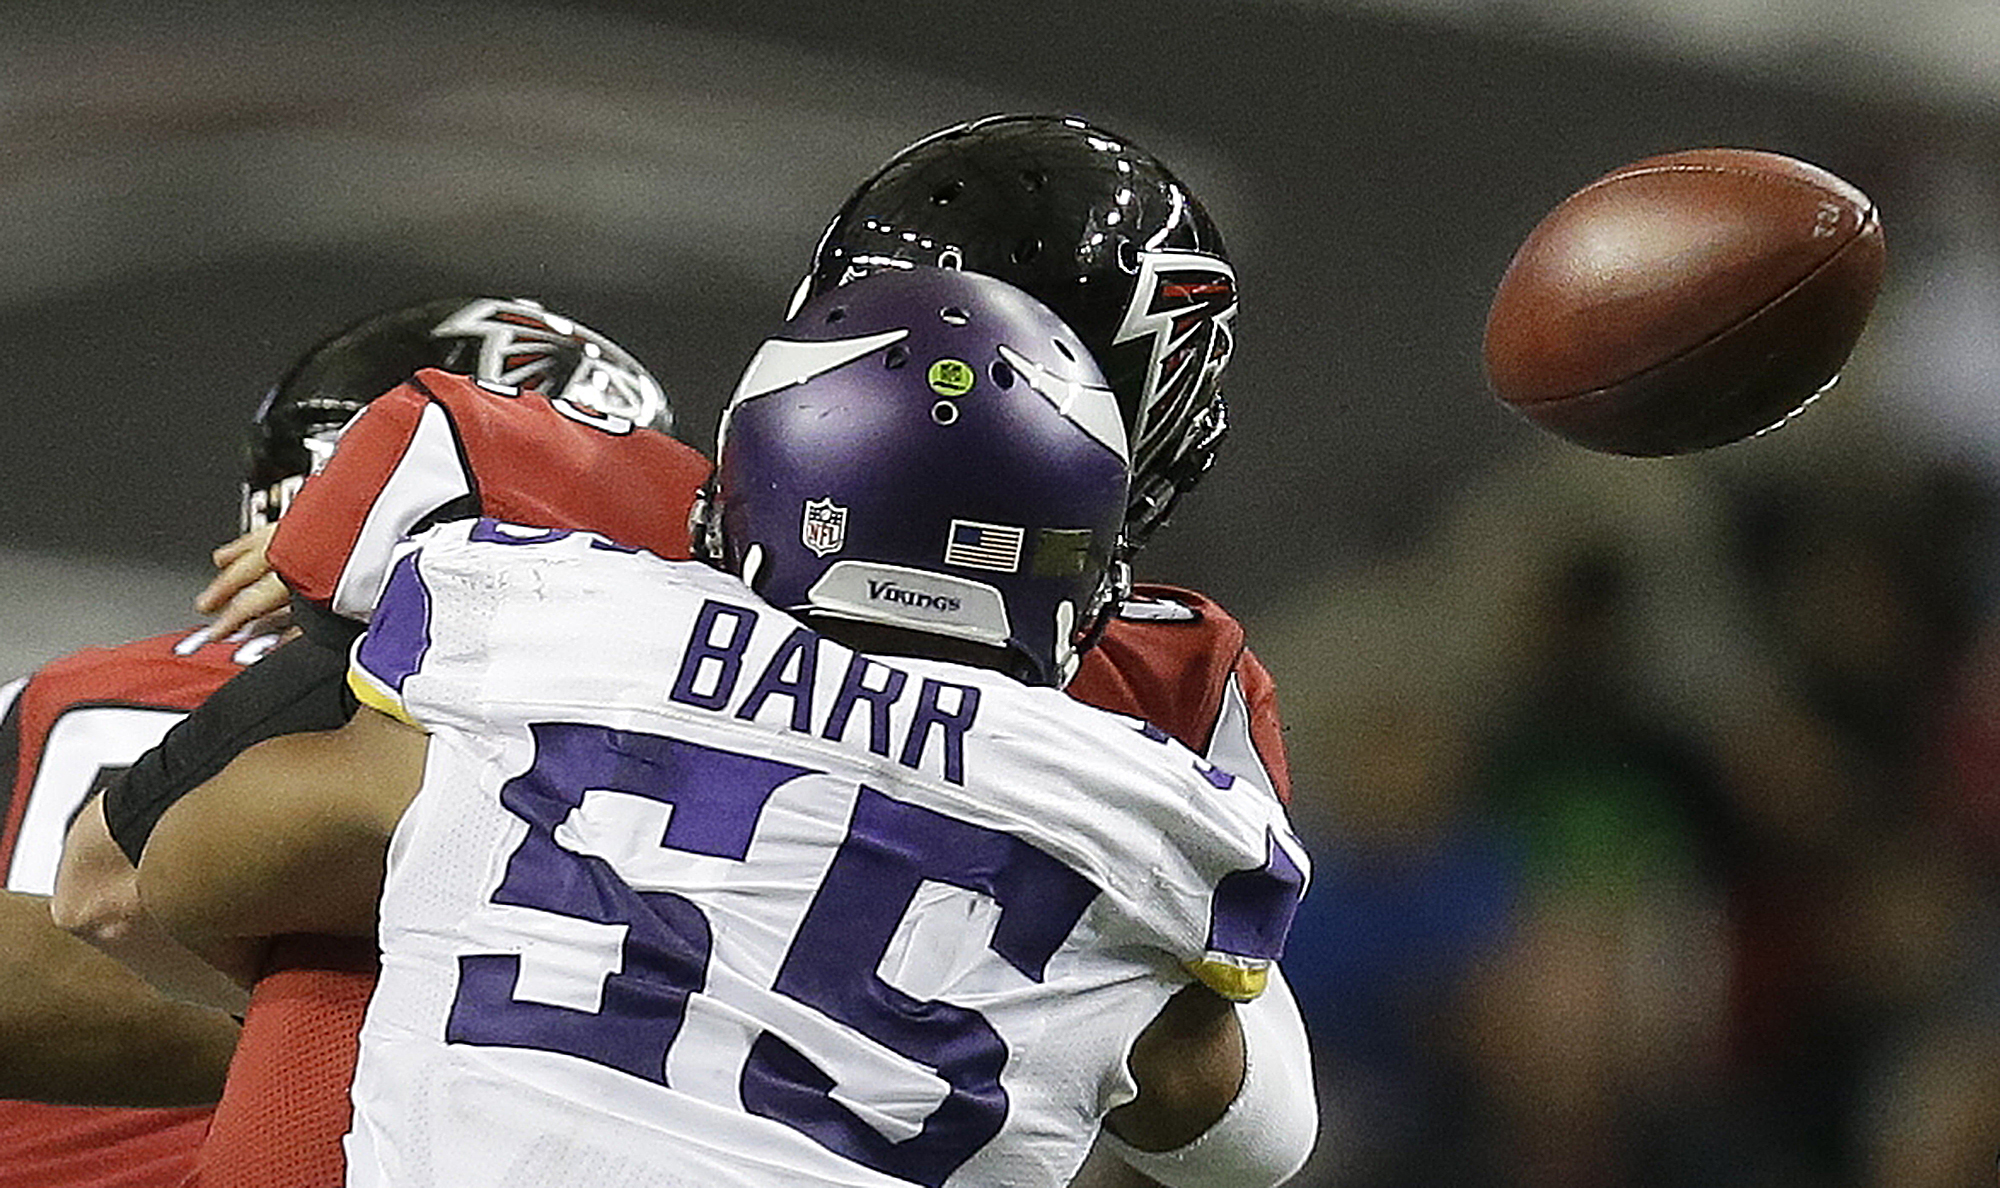 Minnesota Vikings outside linebacker Anthony Barr (55) causes Atlanta Falcons quarterback Matt Ryan (2) to fumble during the second half of an NFL football game, Sunday, Nov. 29, 2015, in Atlanta. Atlanta Falcons defensive tackle Ricky Heimuli recovered t